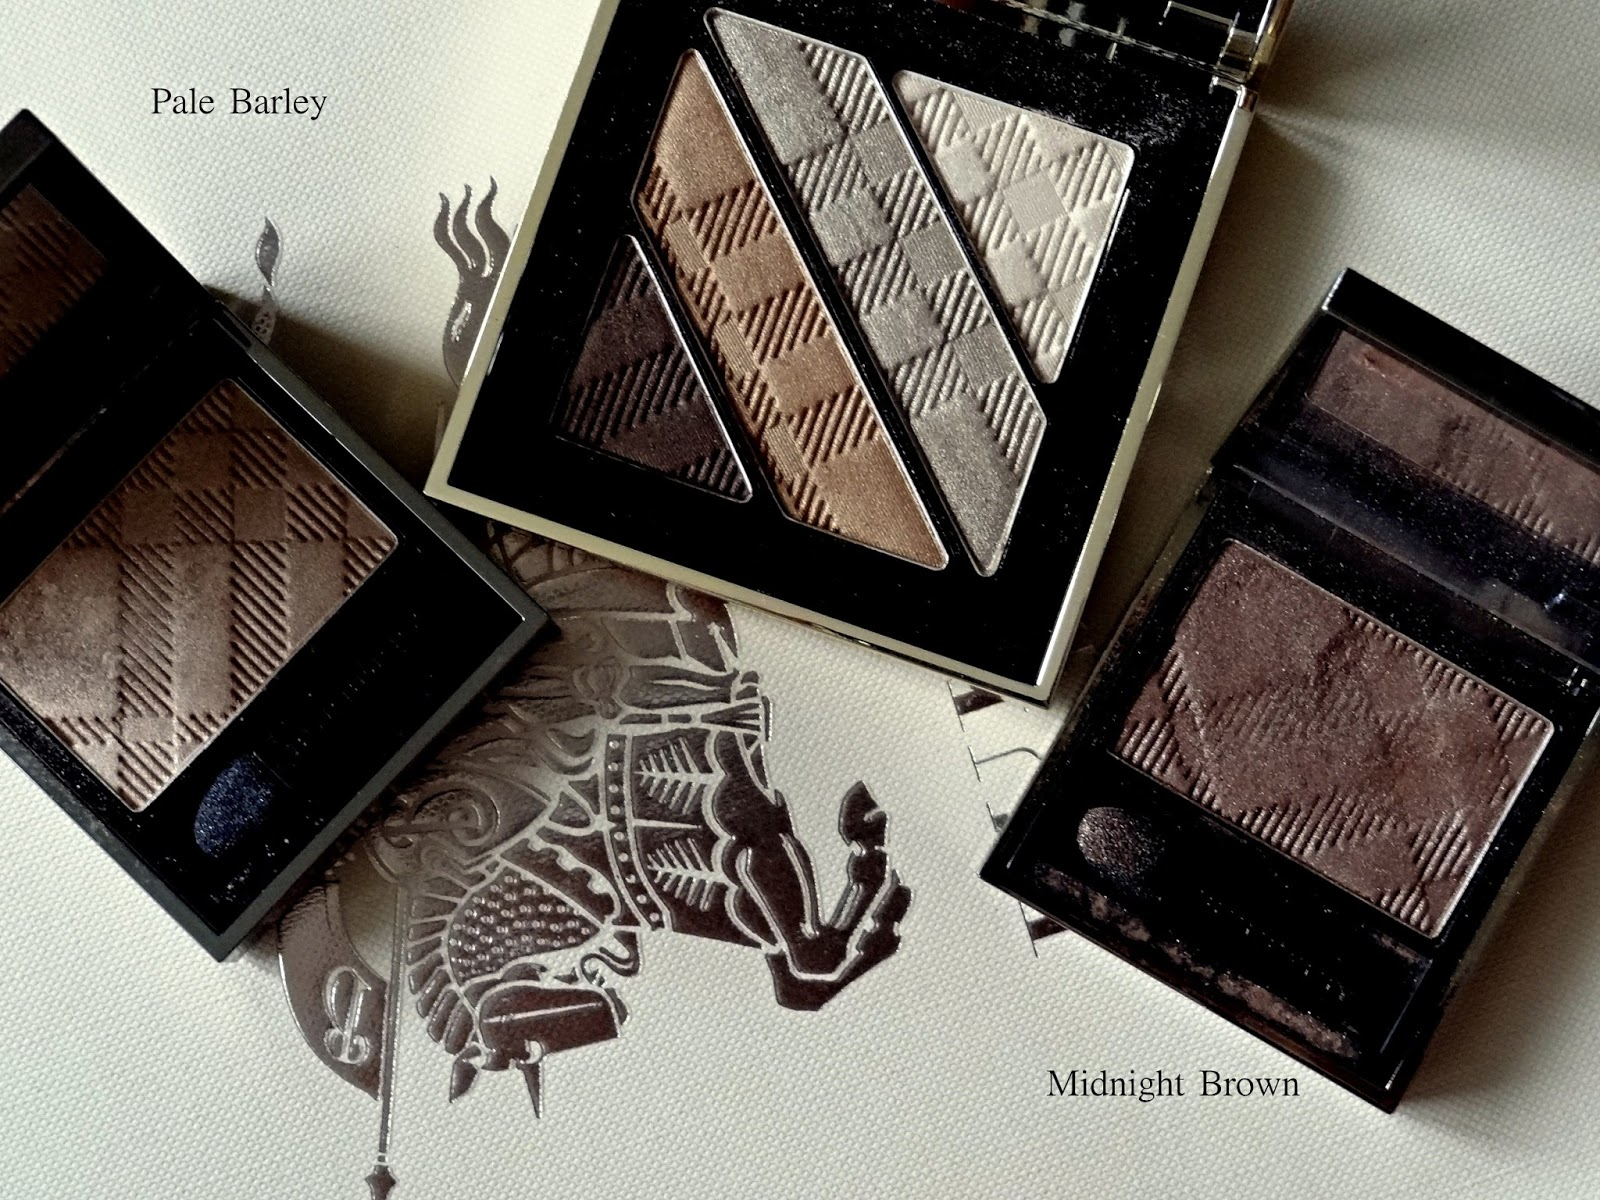 Burberry Beauty Complete Eye Palette in Gold No.25 Swatches Comparison to pale barley and mignight brown